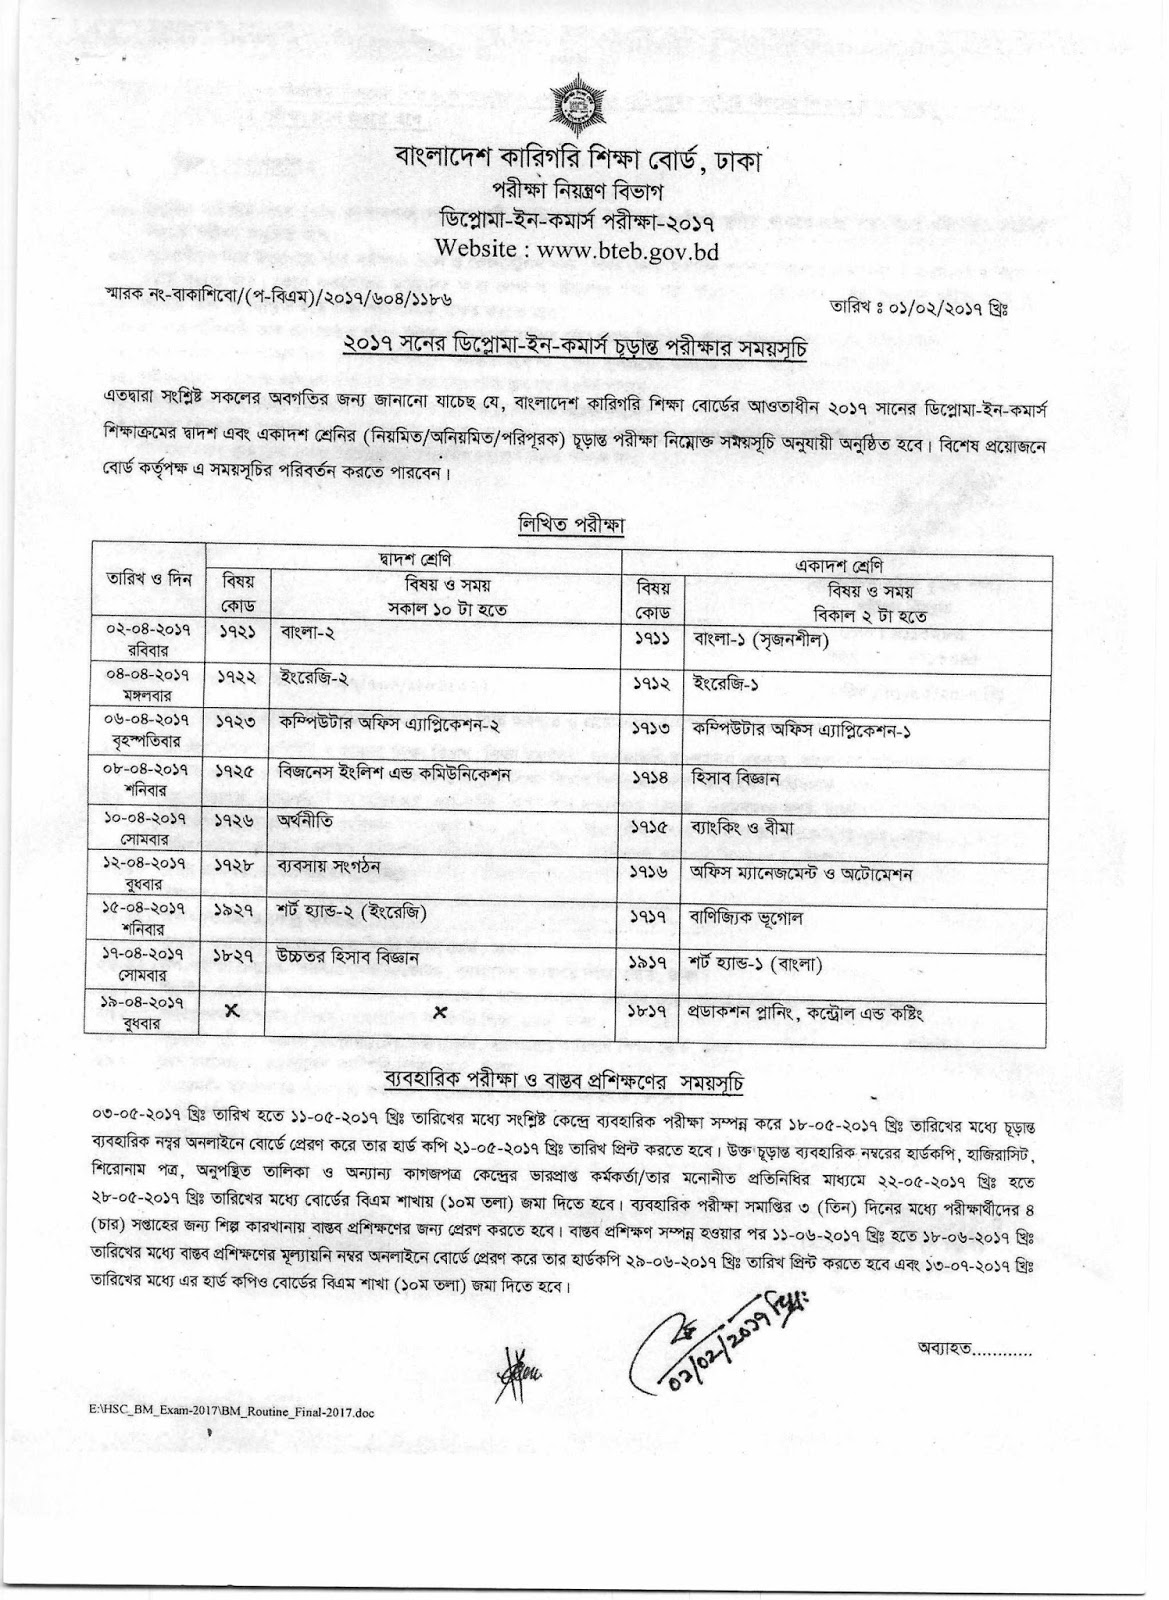 Diploma in Commerce 2017 routine Page 1